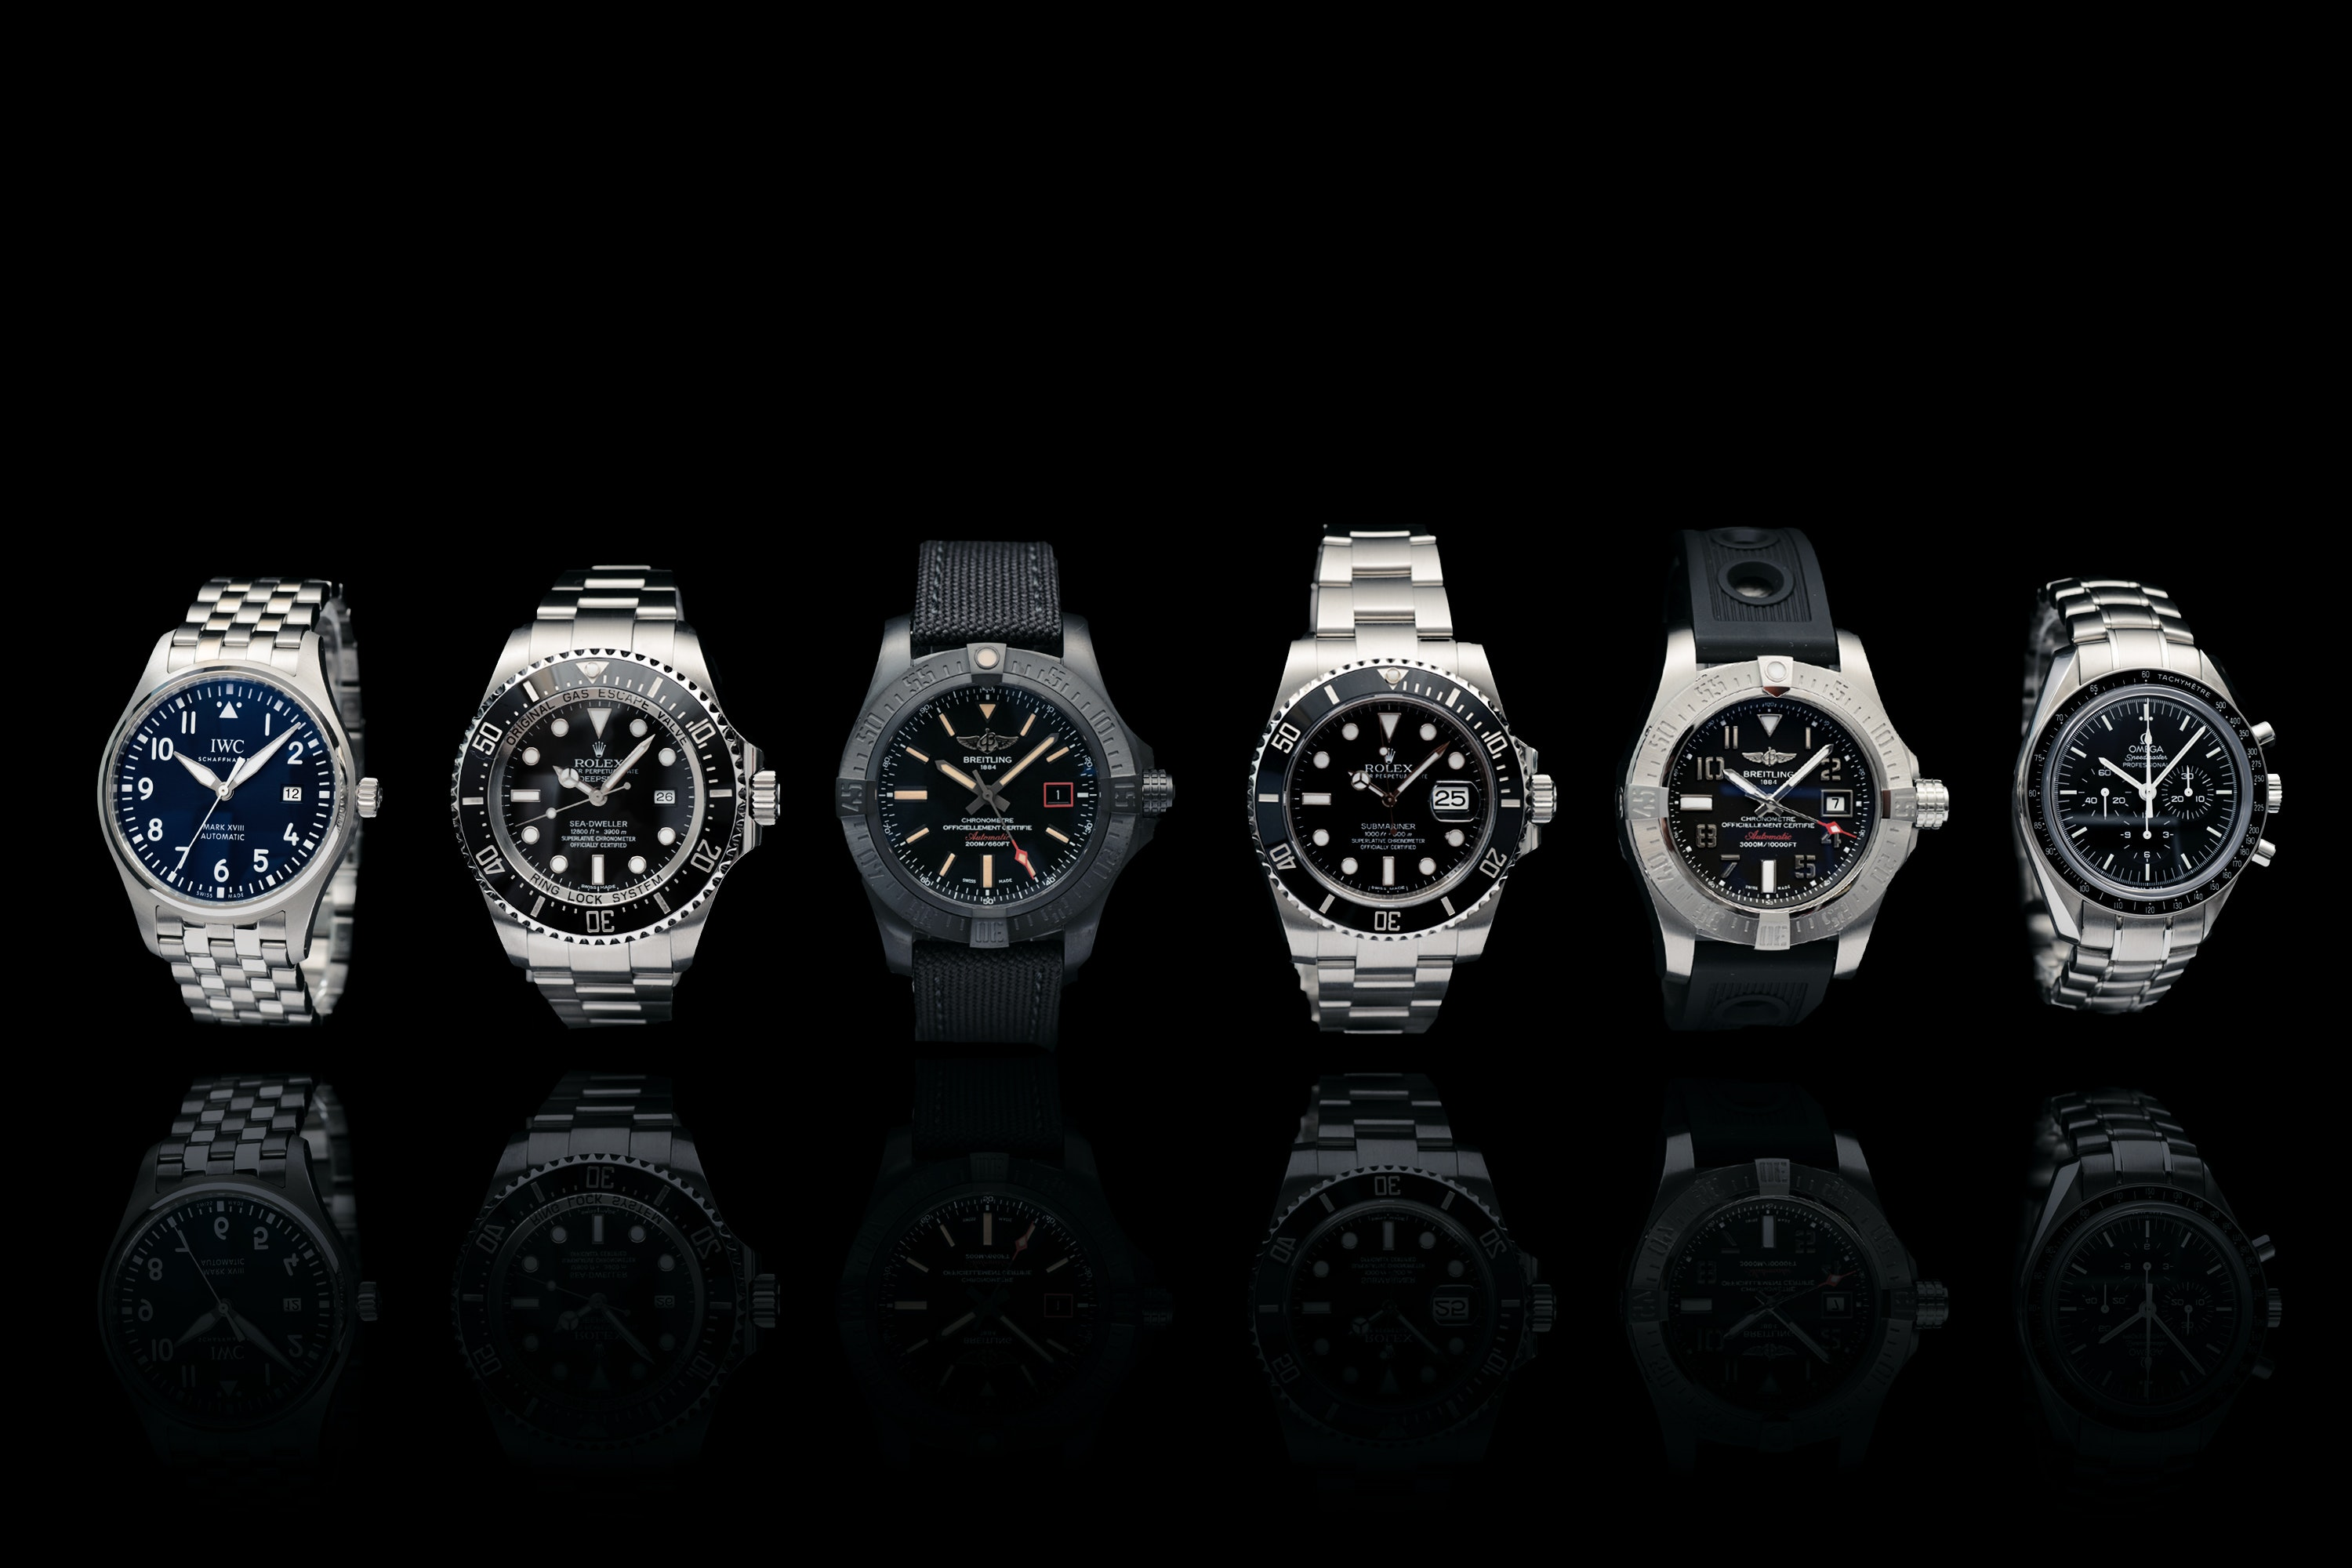 The top ten best-selling watches at CHRONEXT in 2017